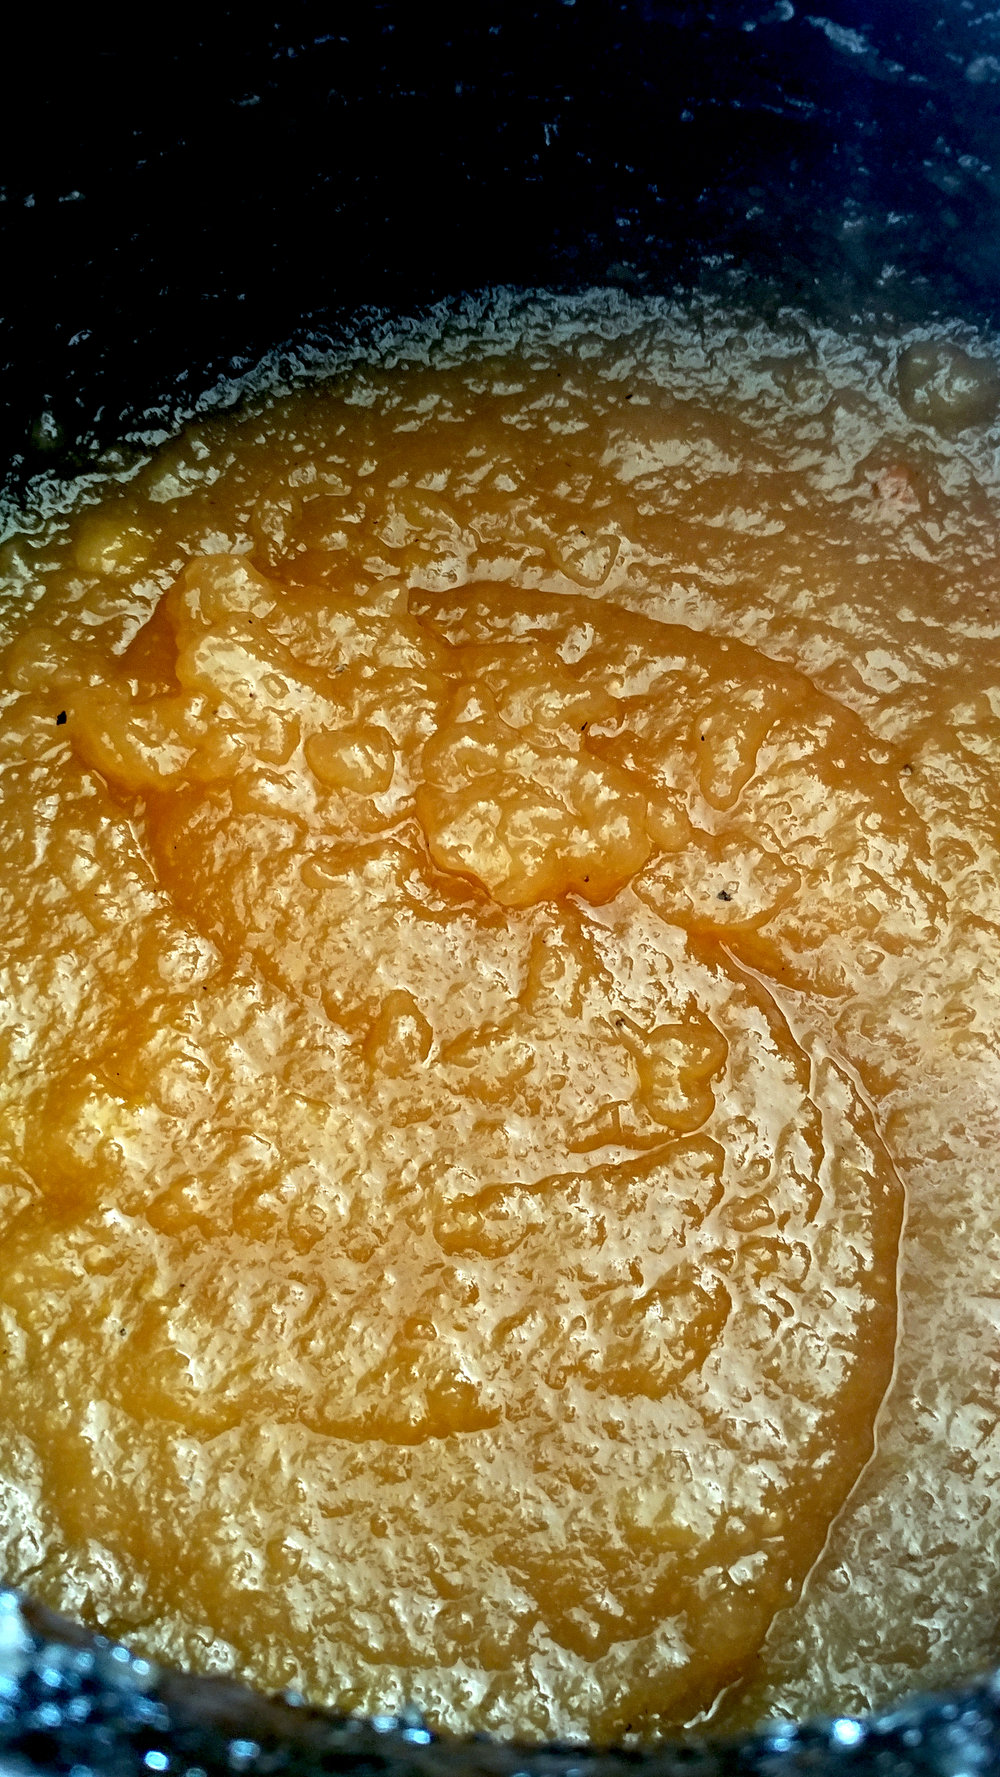 Reduced quince paste, ready to be placed in a container and set into traditional marmalade. As you can see, it is extremely firm and ready to set.